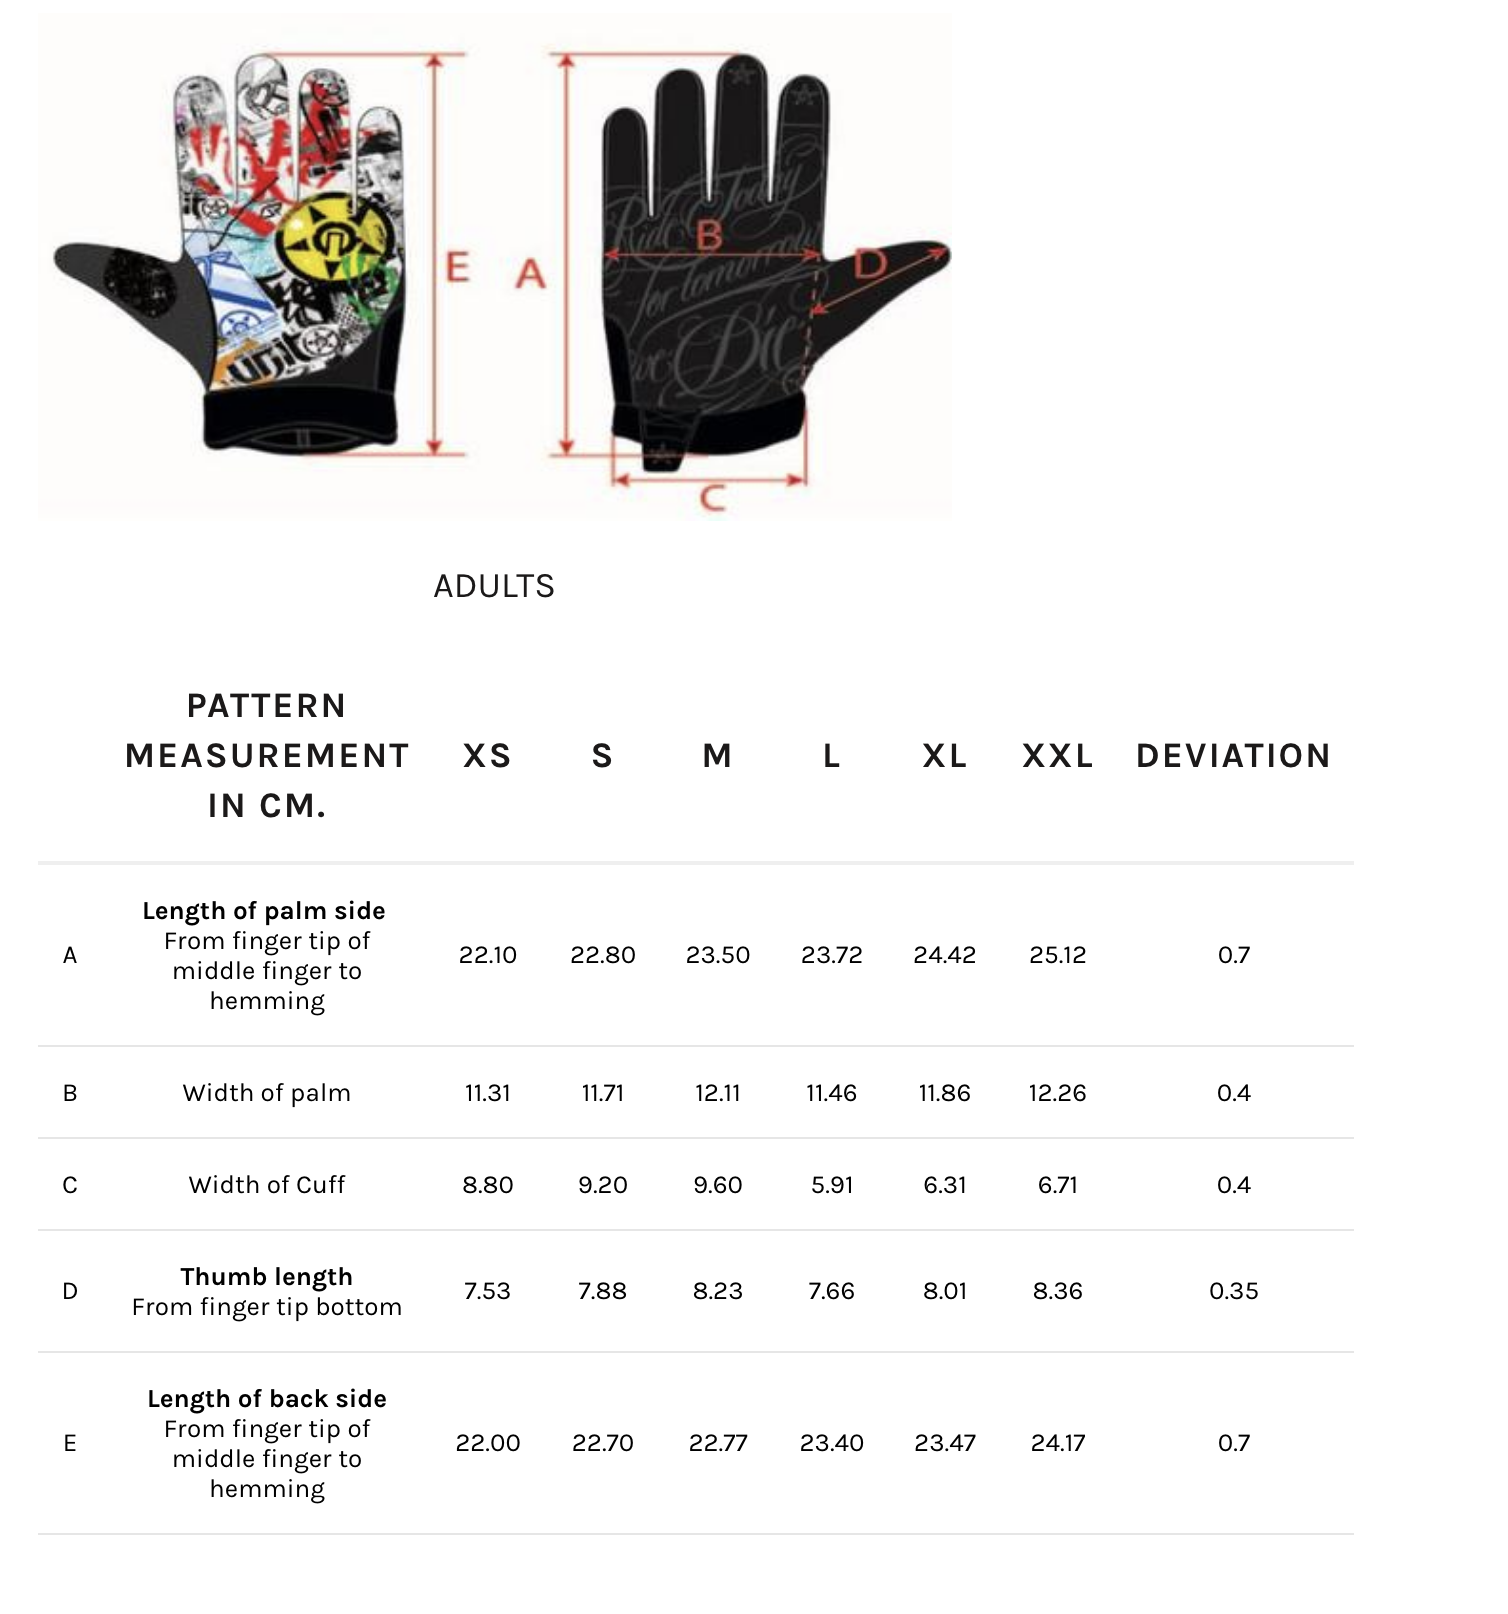 Unit - Spark MX Gloves Size Guide